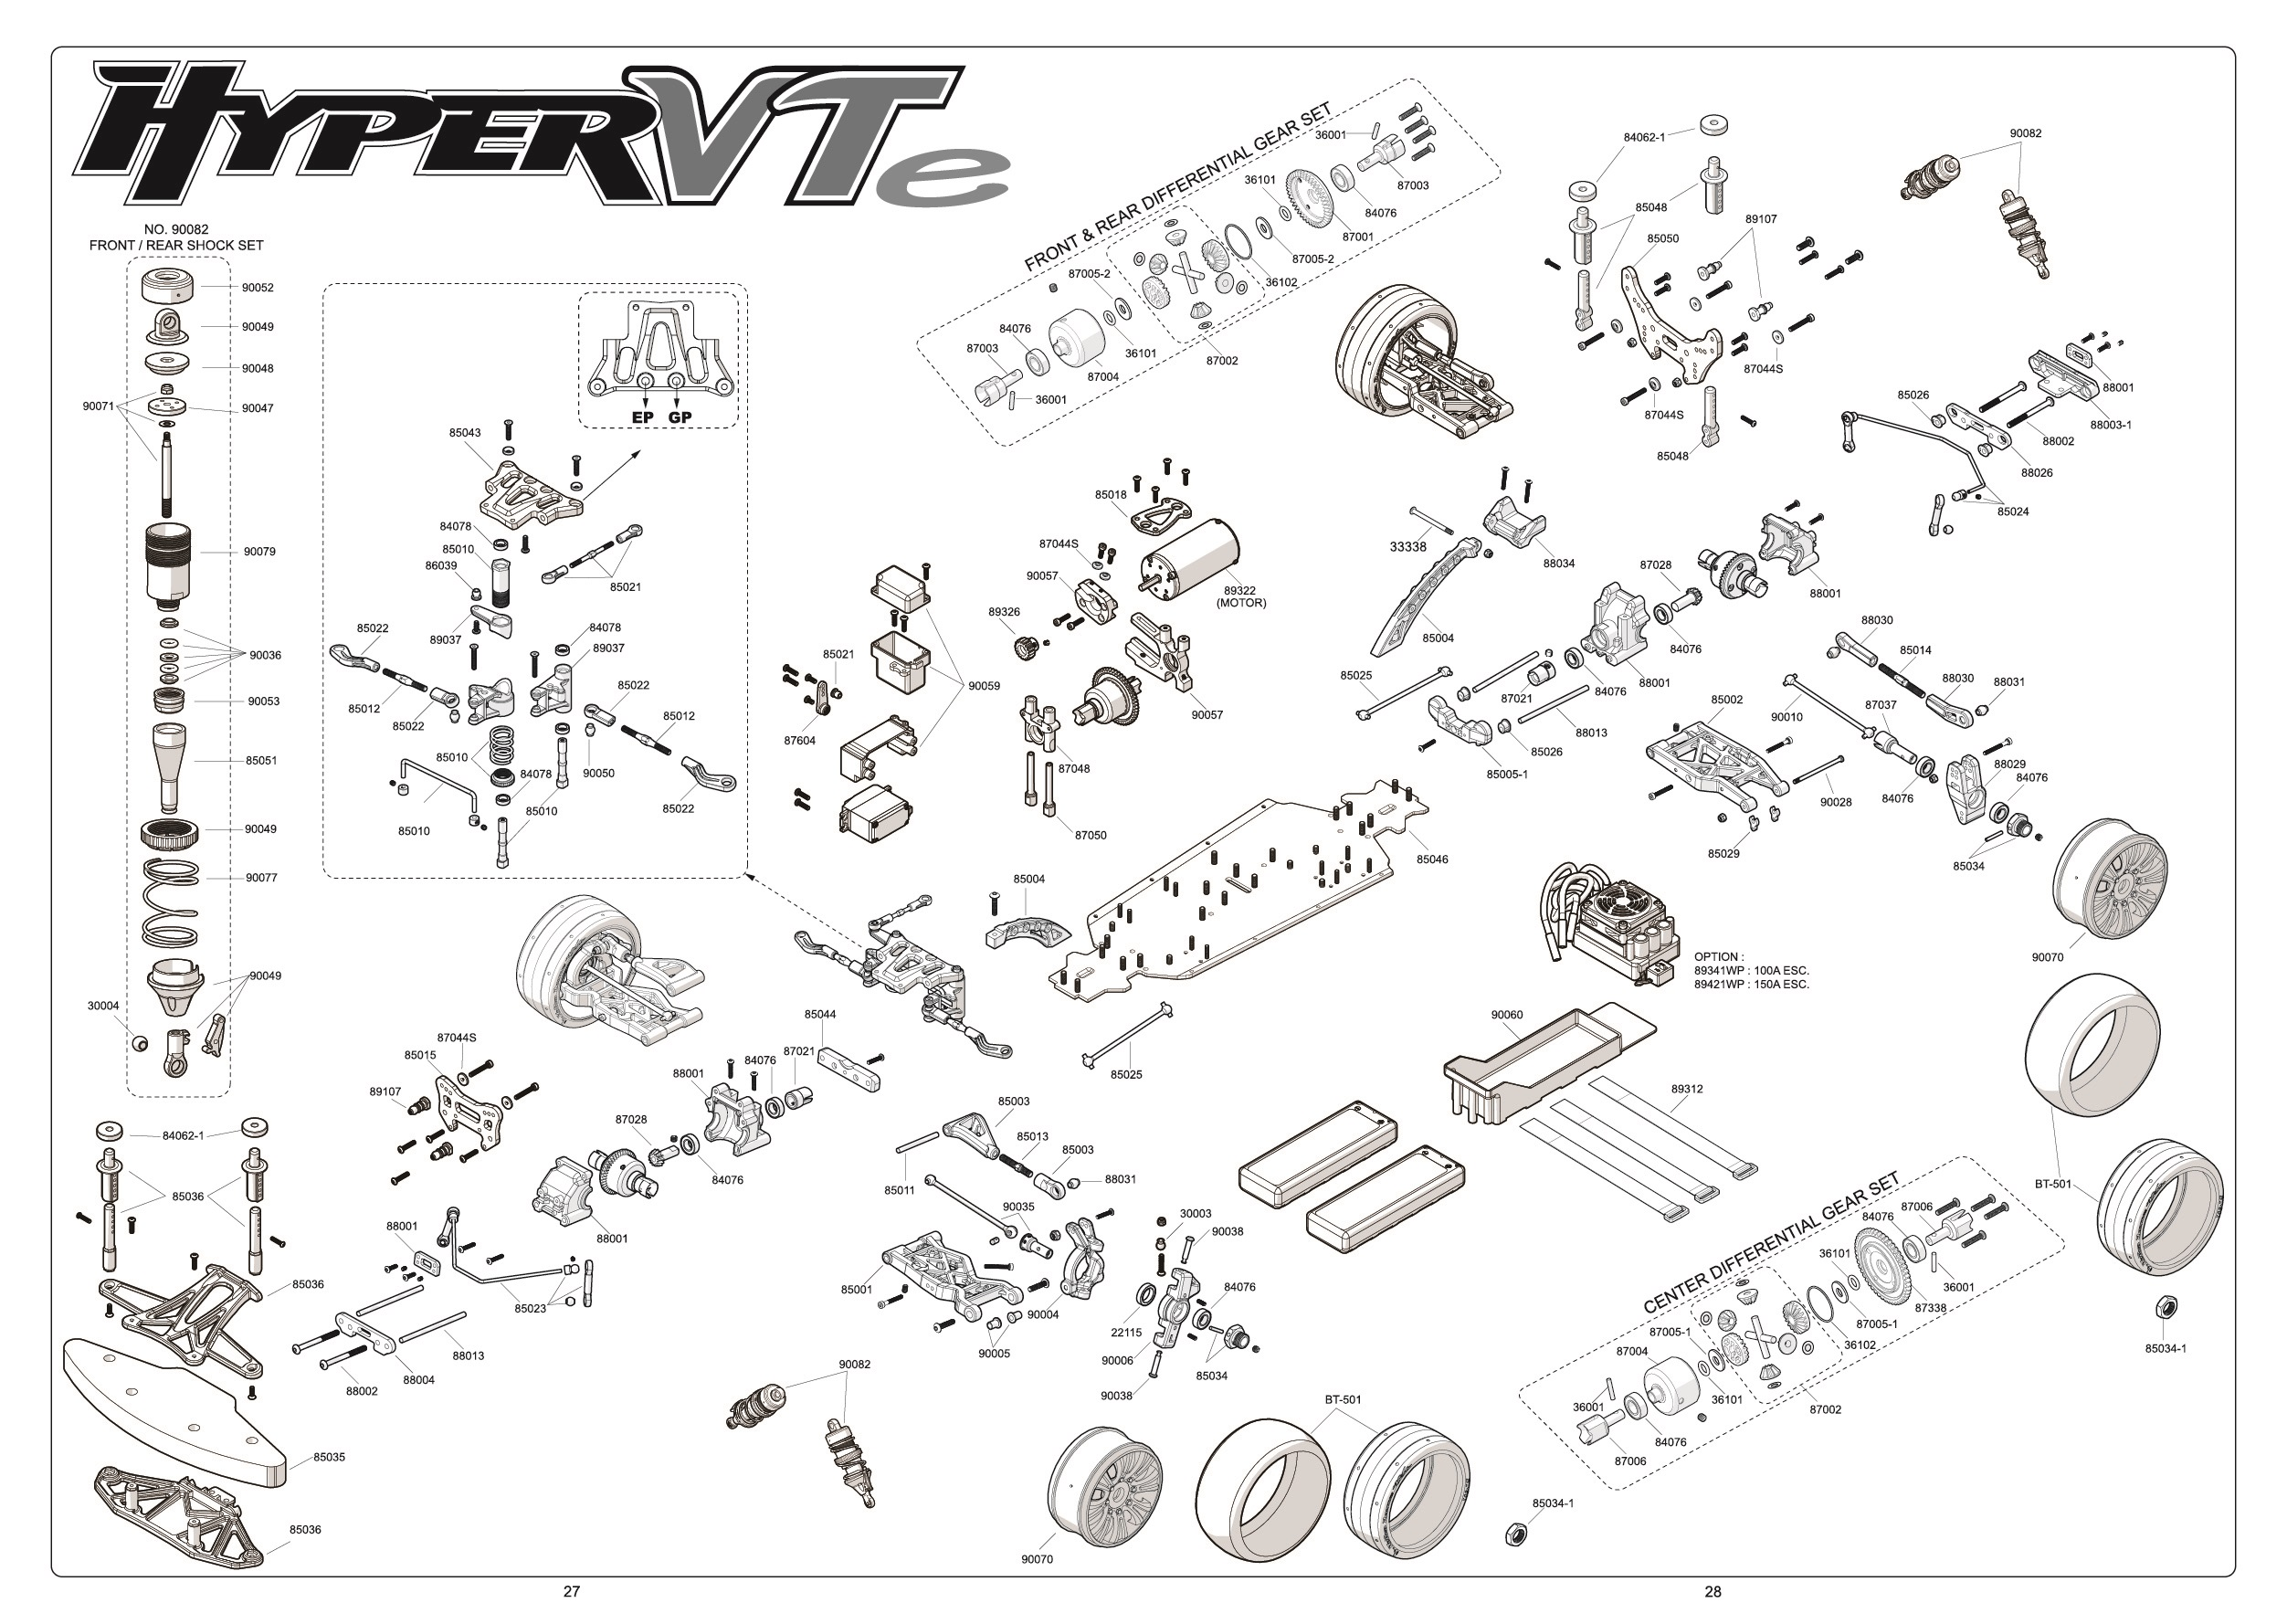 Hobao Hyper Vt Electric On Road 1 8th Roller Chassis 80 Hbvte Go Back Gt Gallery For Brushless Motor Diagram Exploded